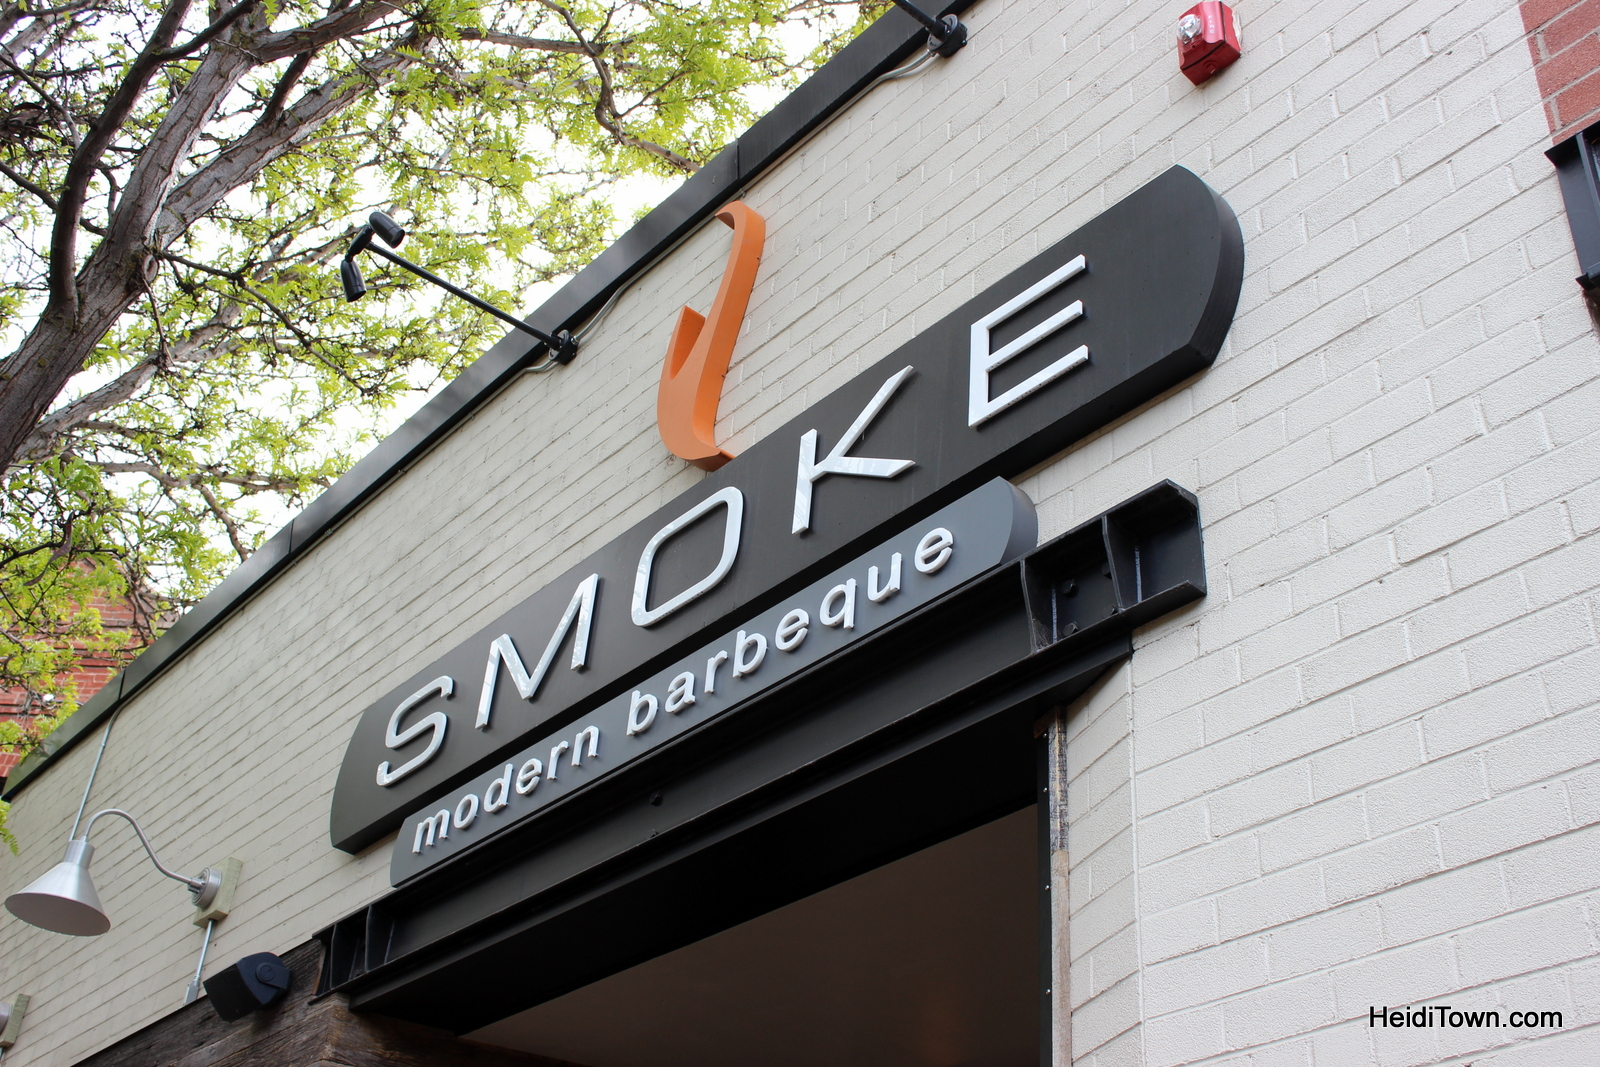 Smoke Modern BBQ in Glenwood Springs, Colorado. HeidiTown.com